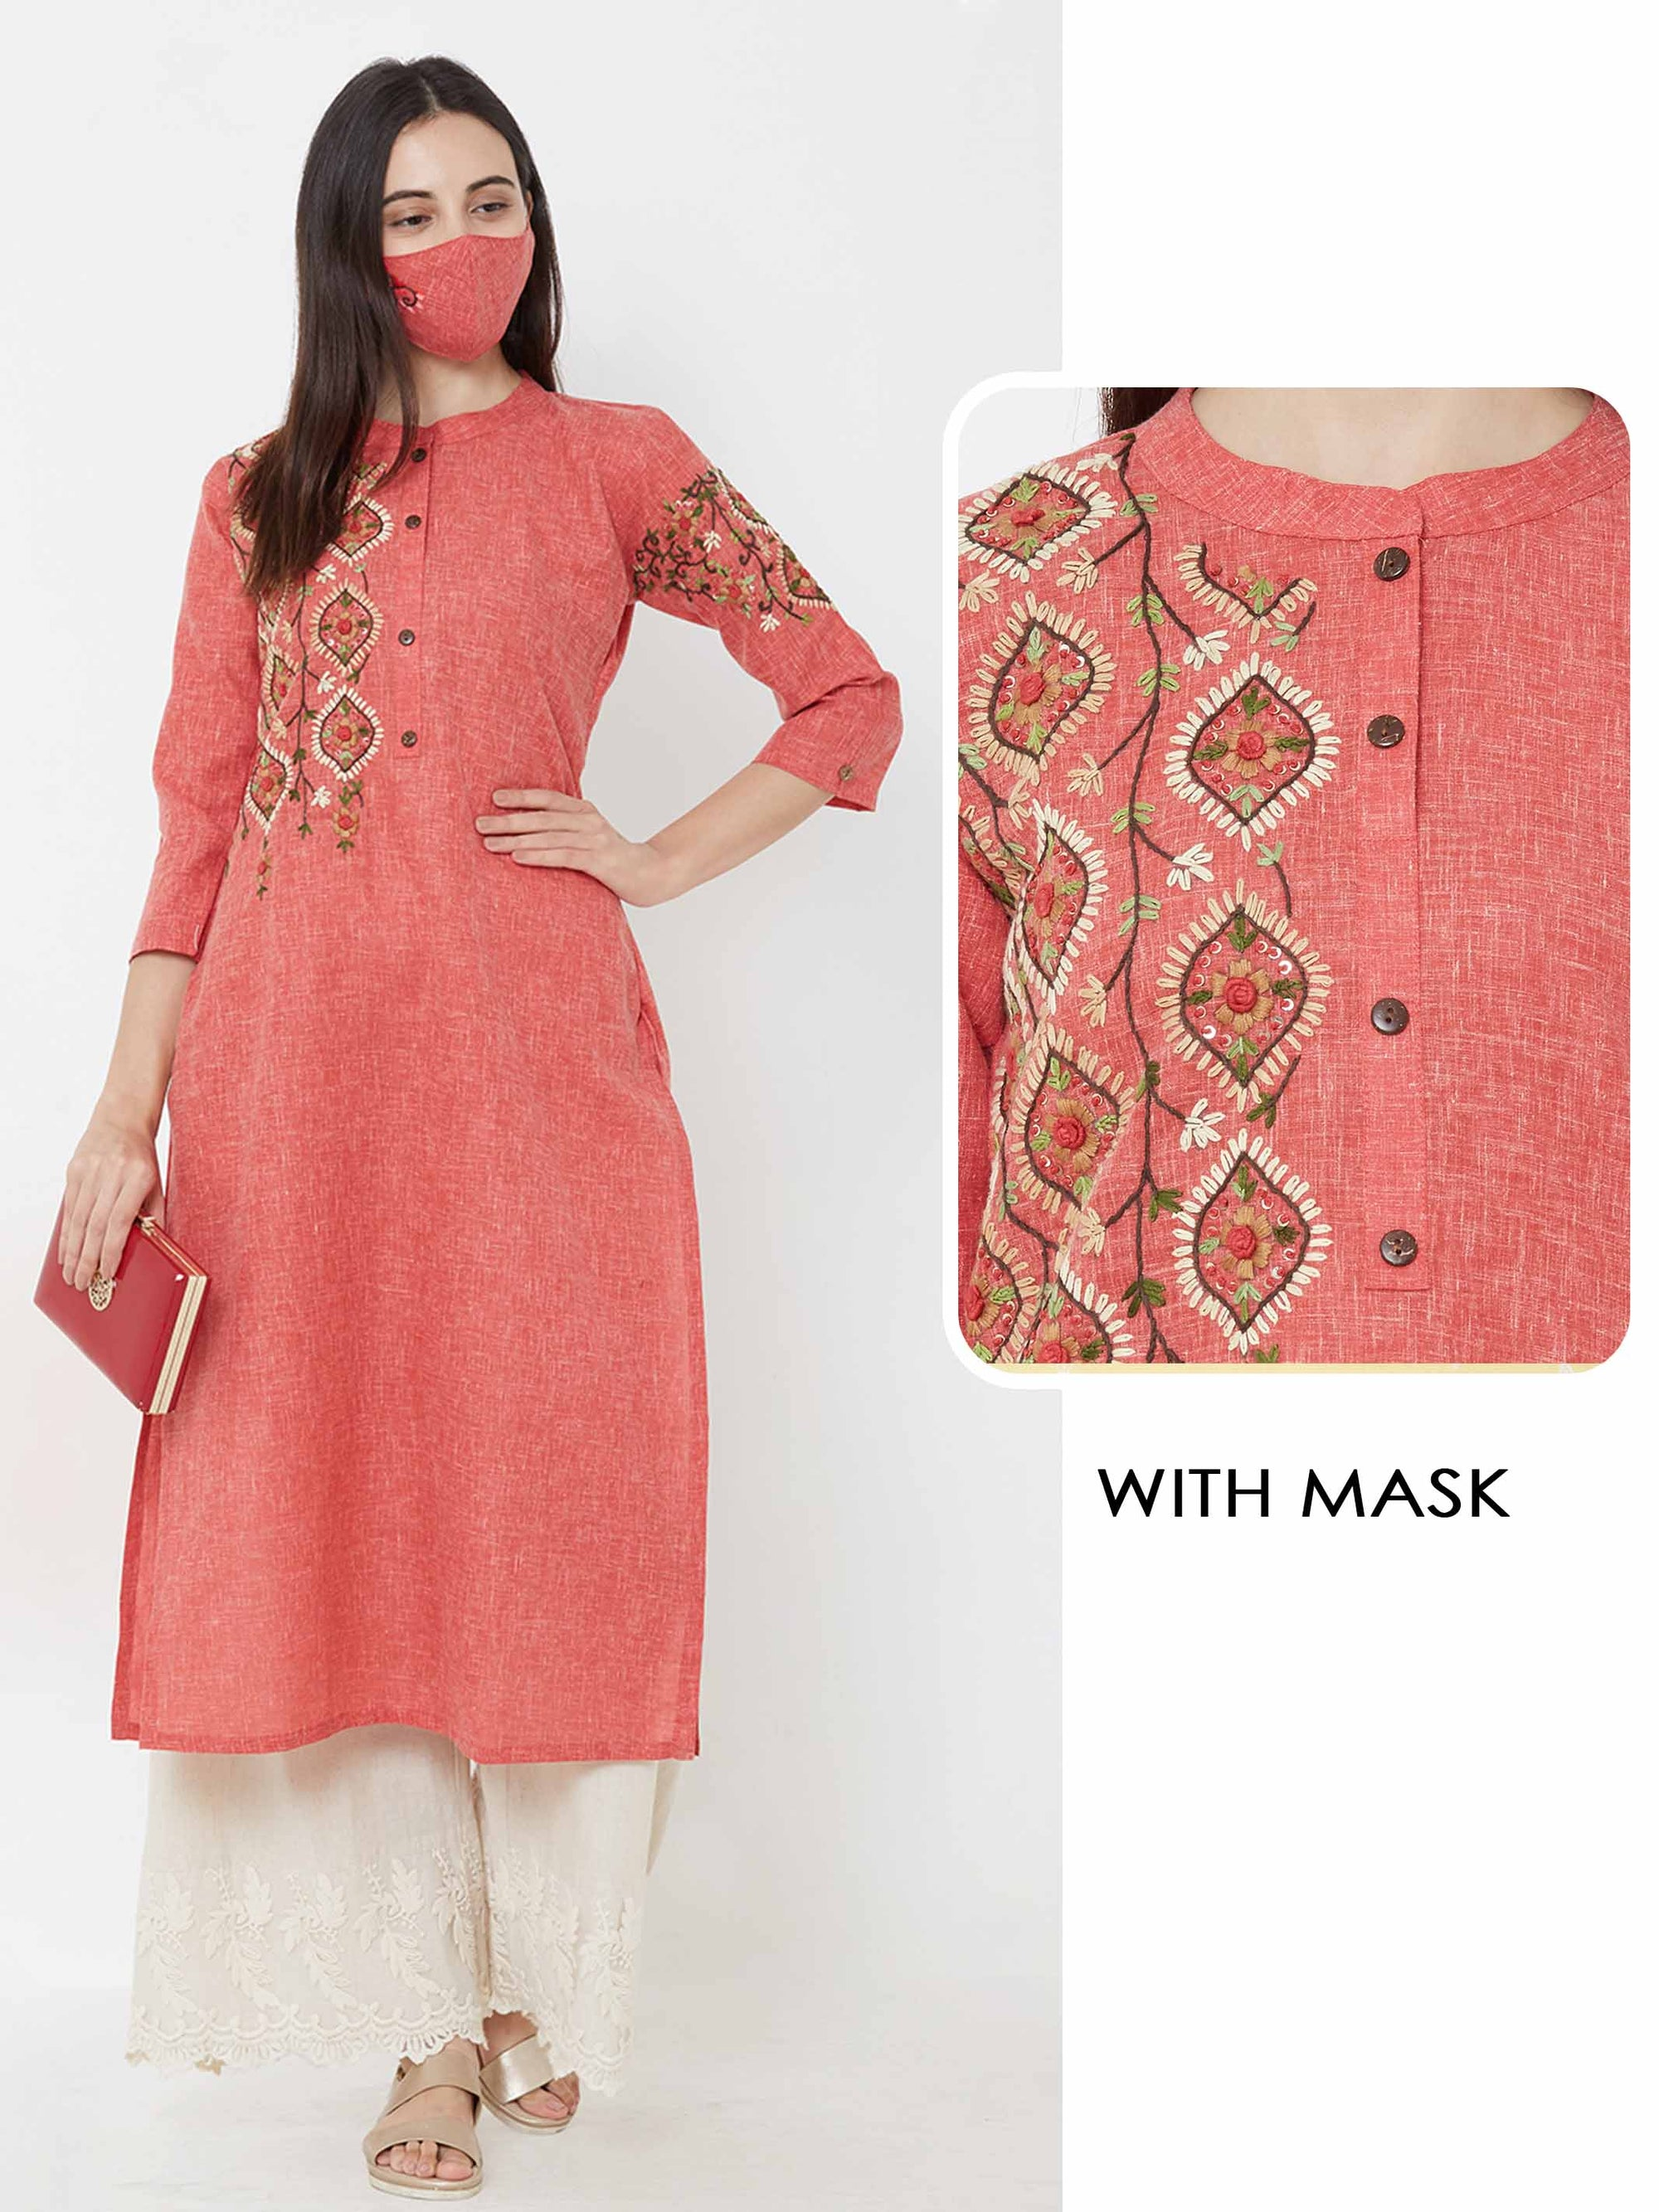 Hand Embroidered Kurta & matching mask – Peach